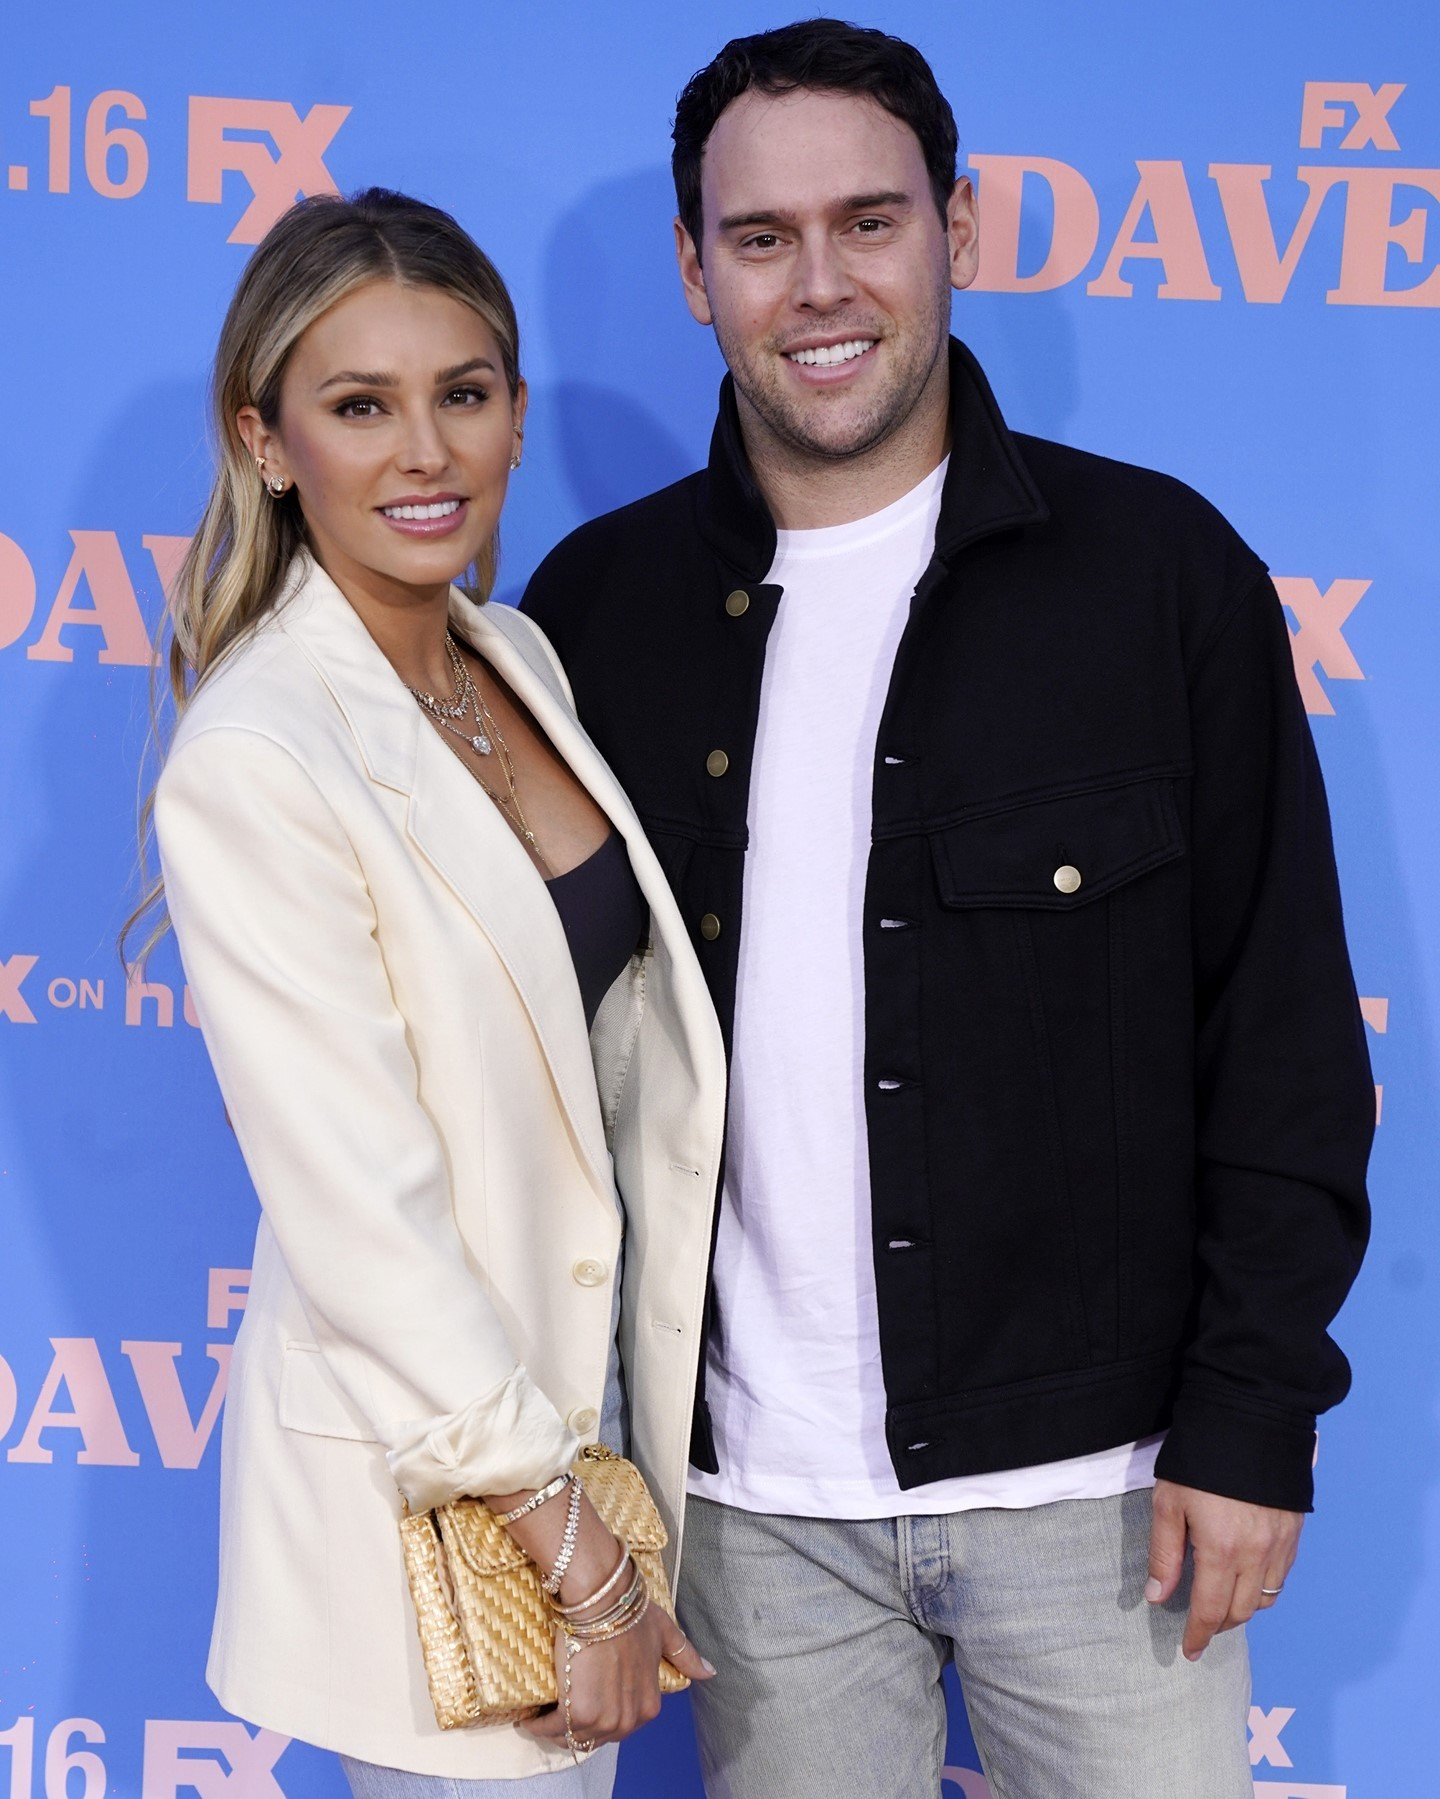 Scooter Braun Files for Divorce From Wife Yael After 7 Years of Marriage Photo